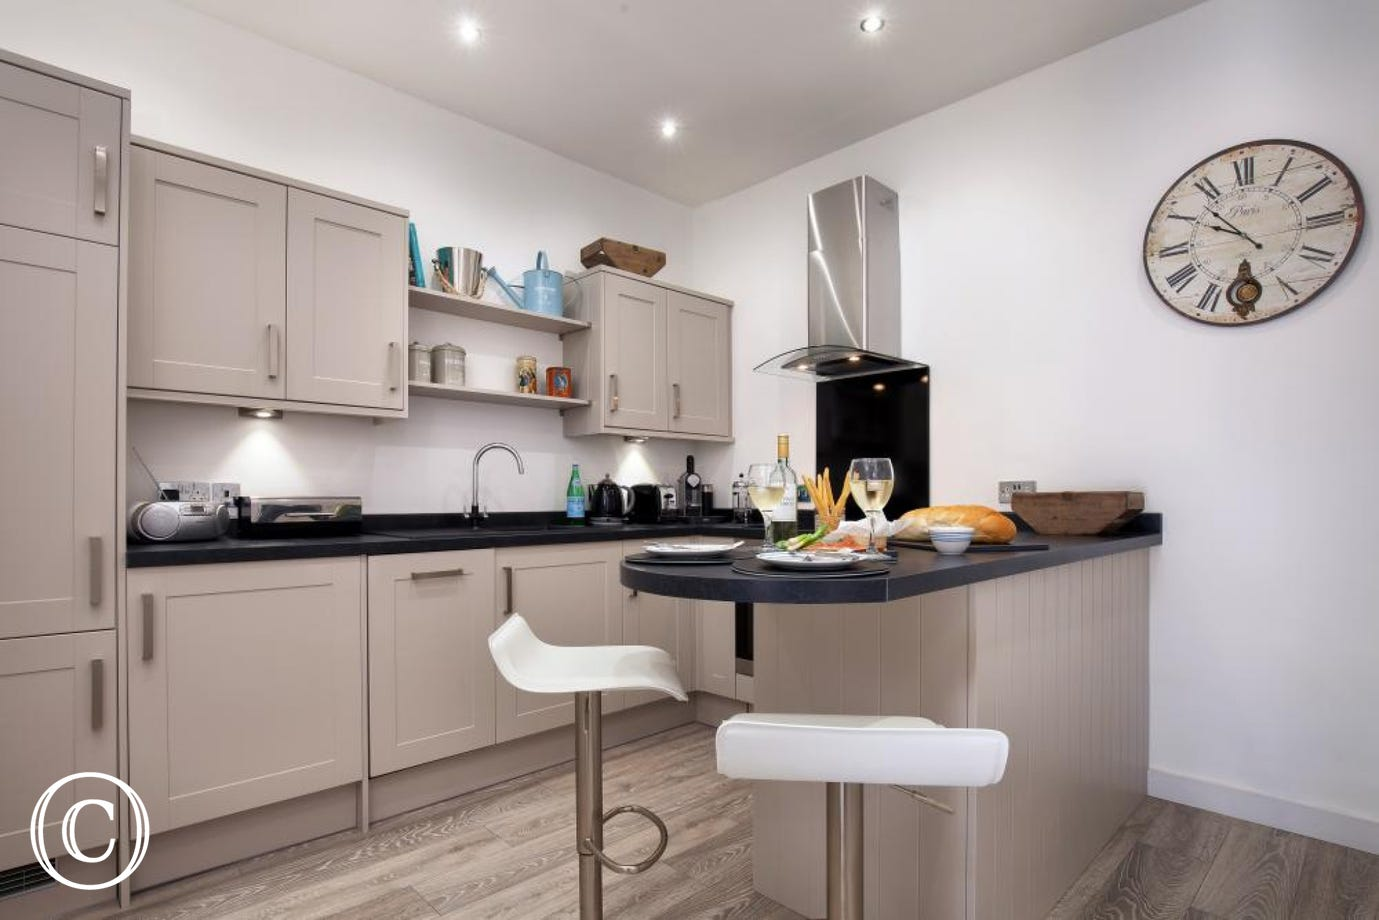 Modern Kitchen, Perfect for Cooking whilst on a Self-Catering Holiday in Torbay